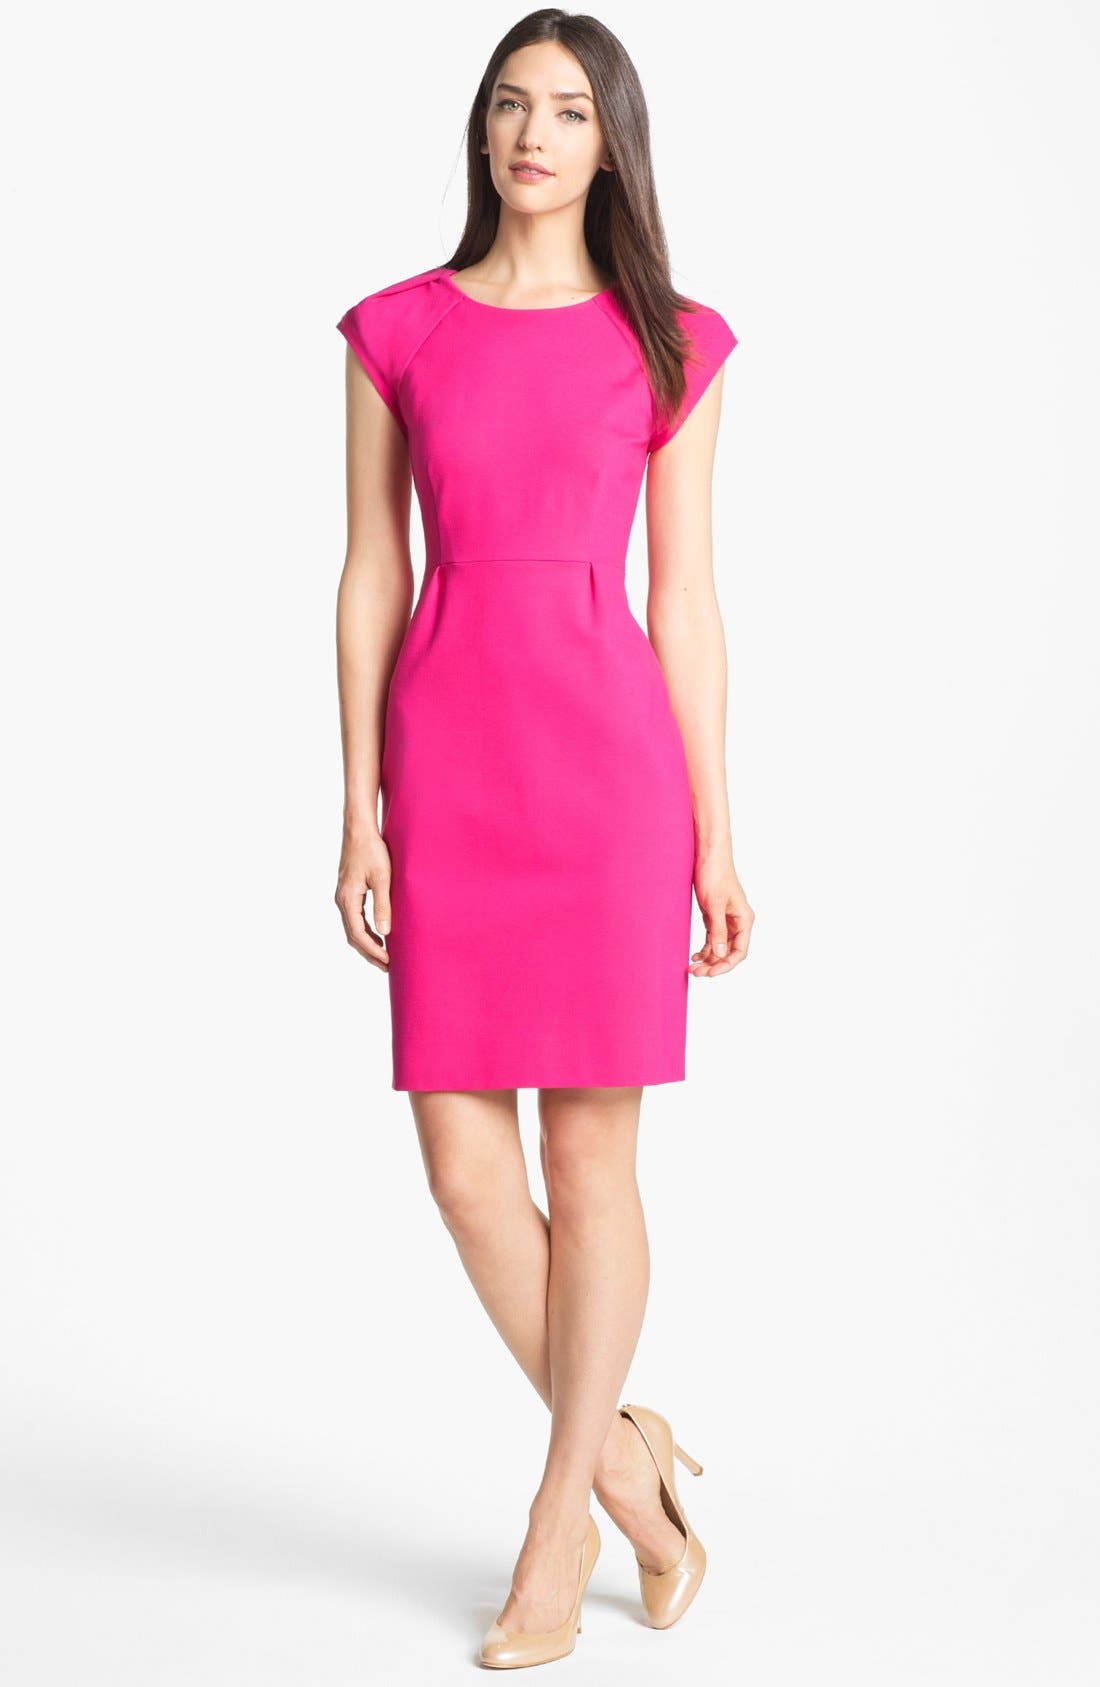 Alternate Image 1 Selected - kate spade new york 'ivie' stretch sheath dress (Online Only)